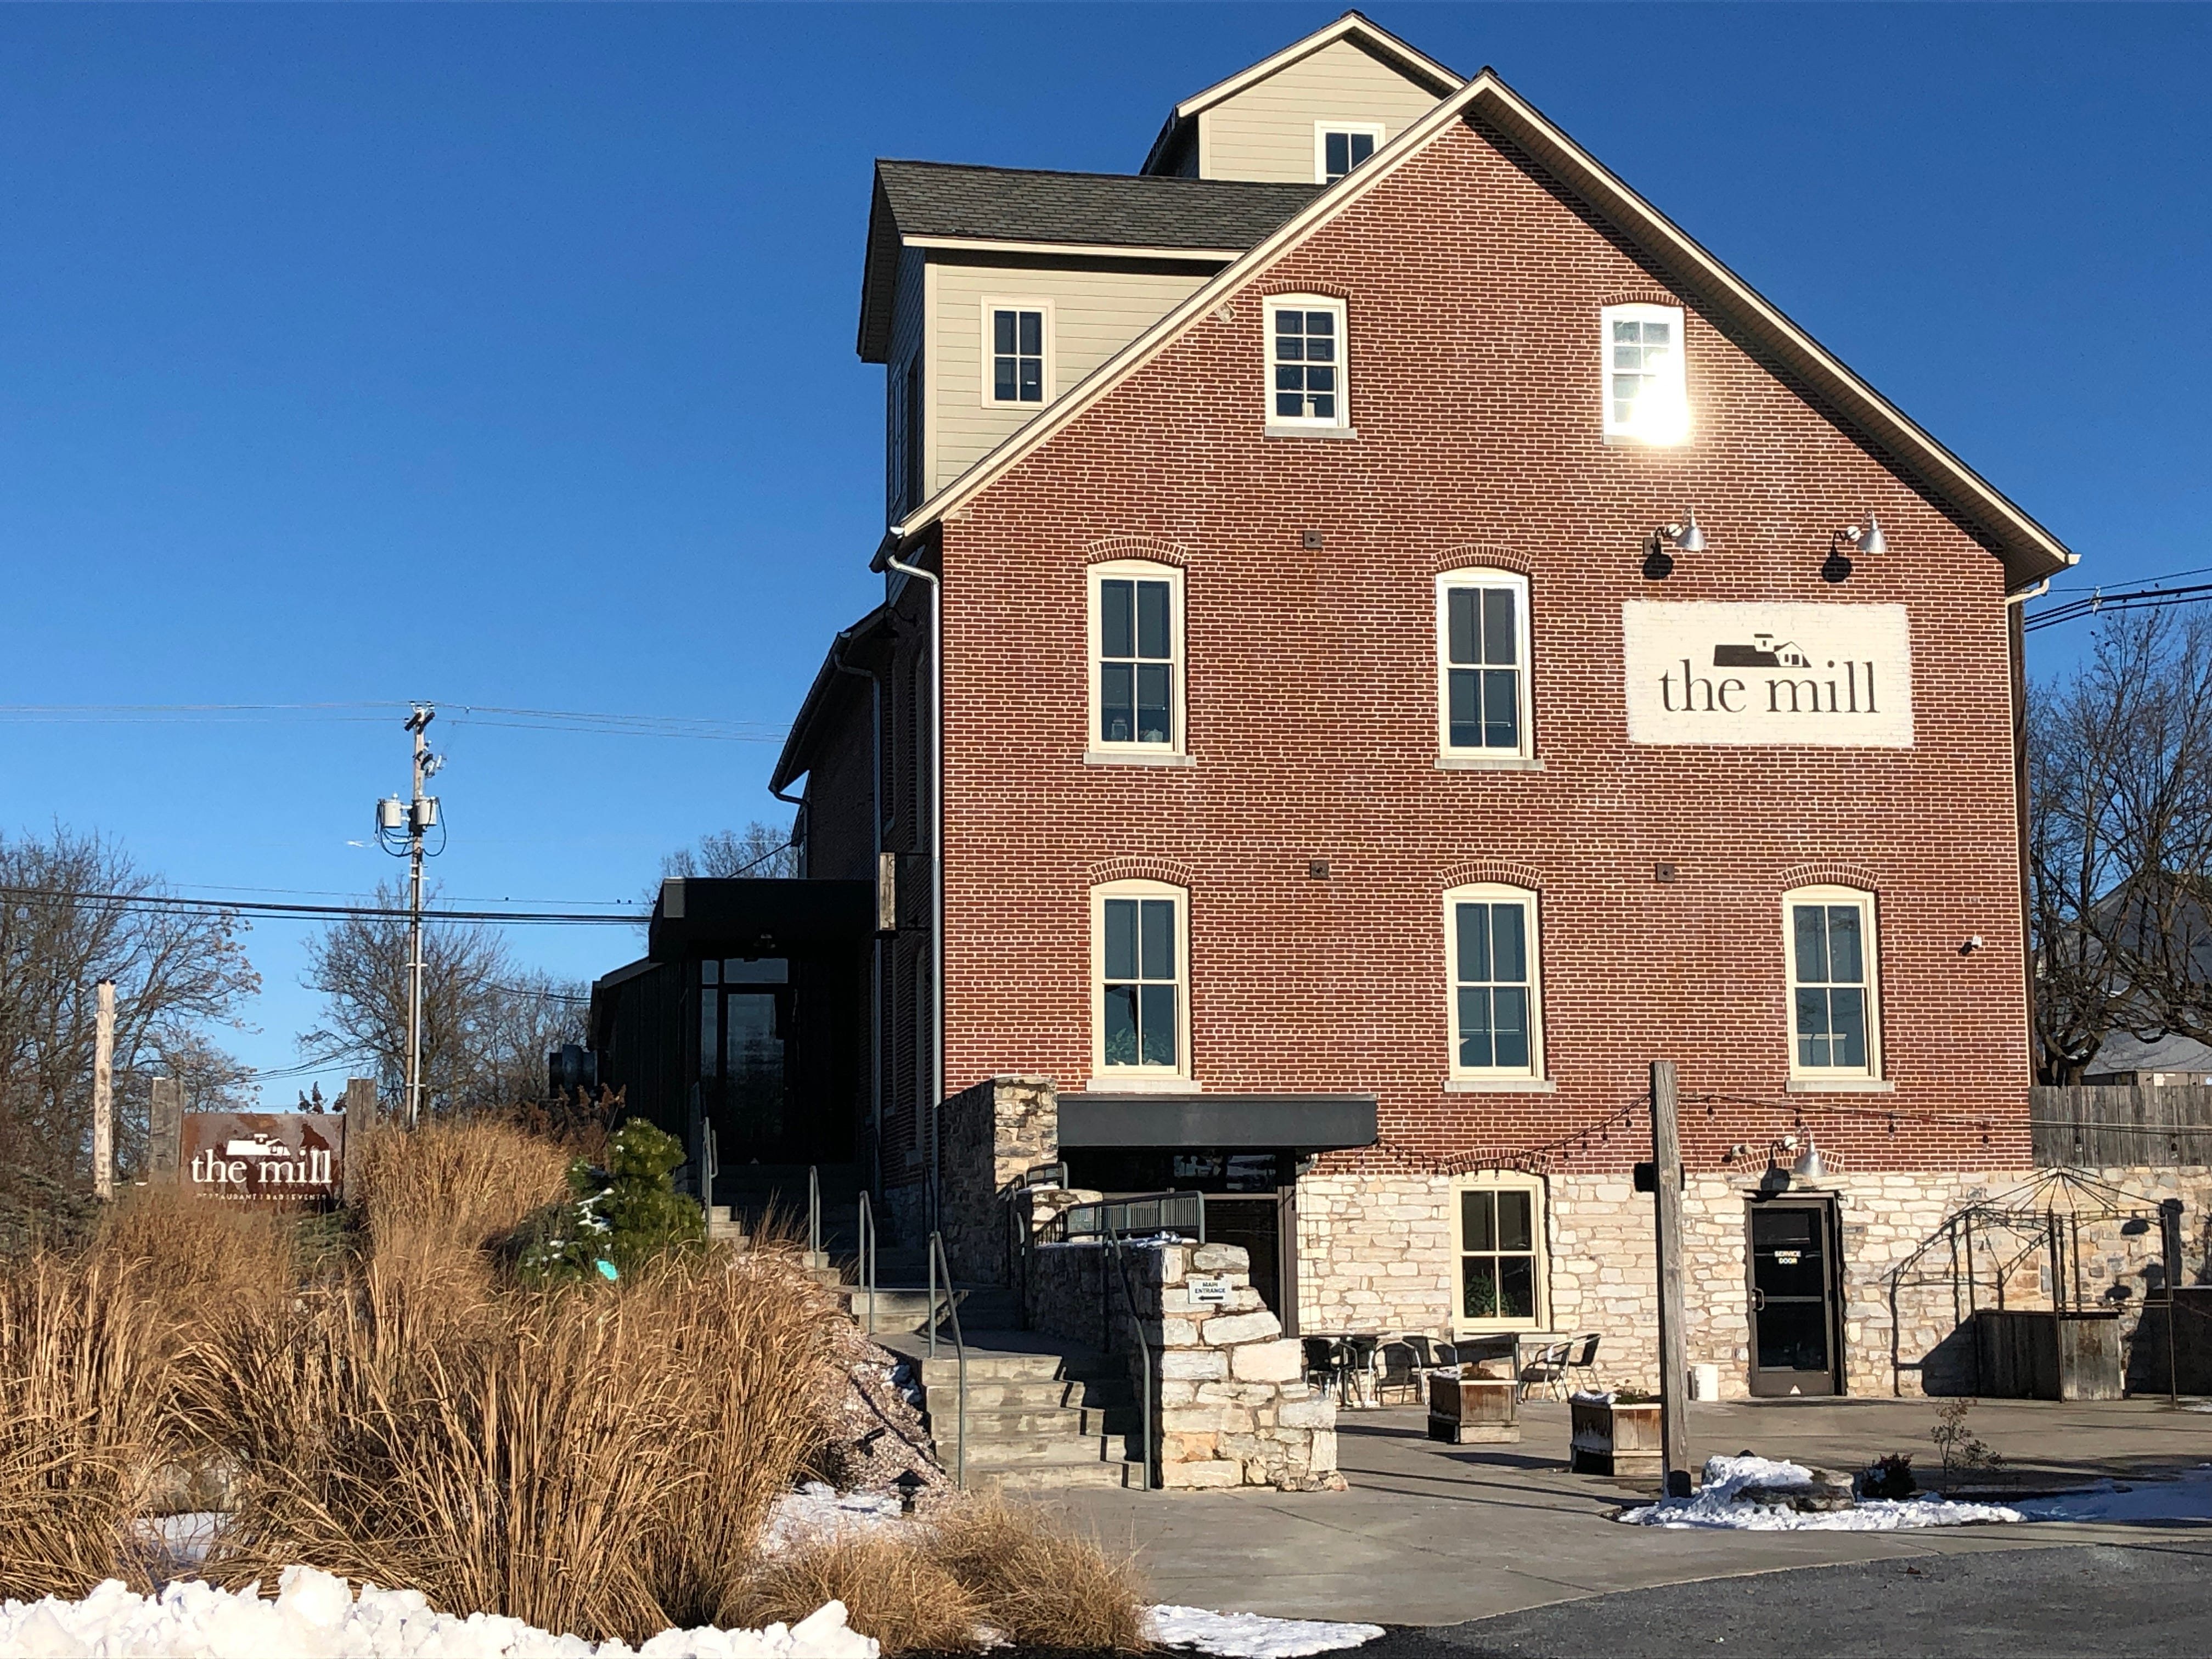 The Mill in Hershey